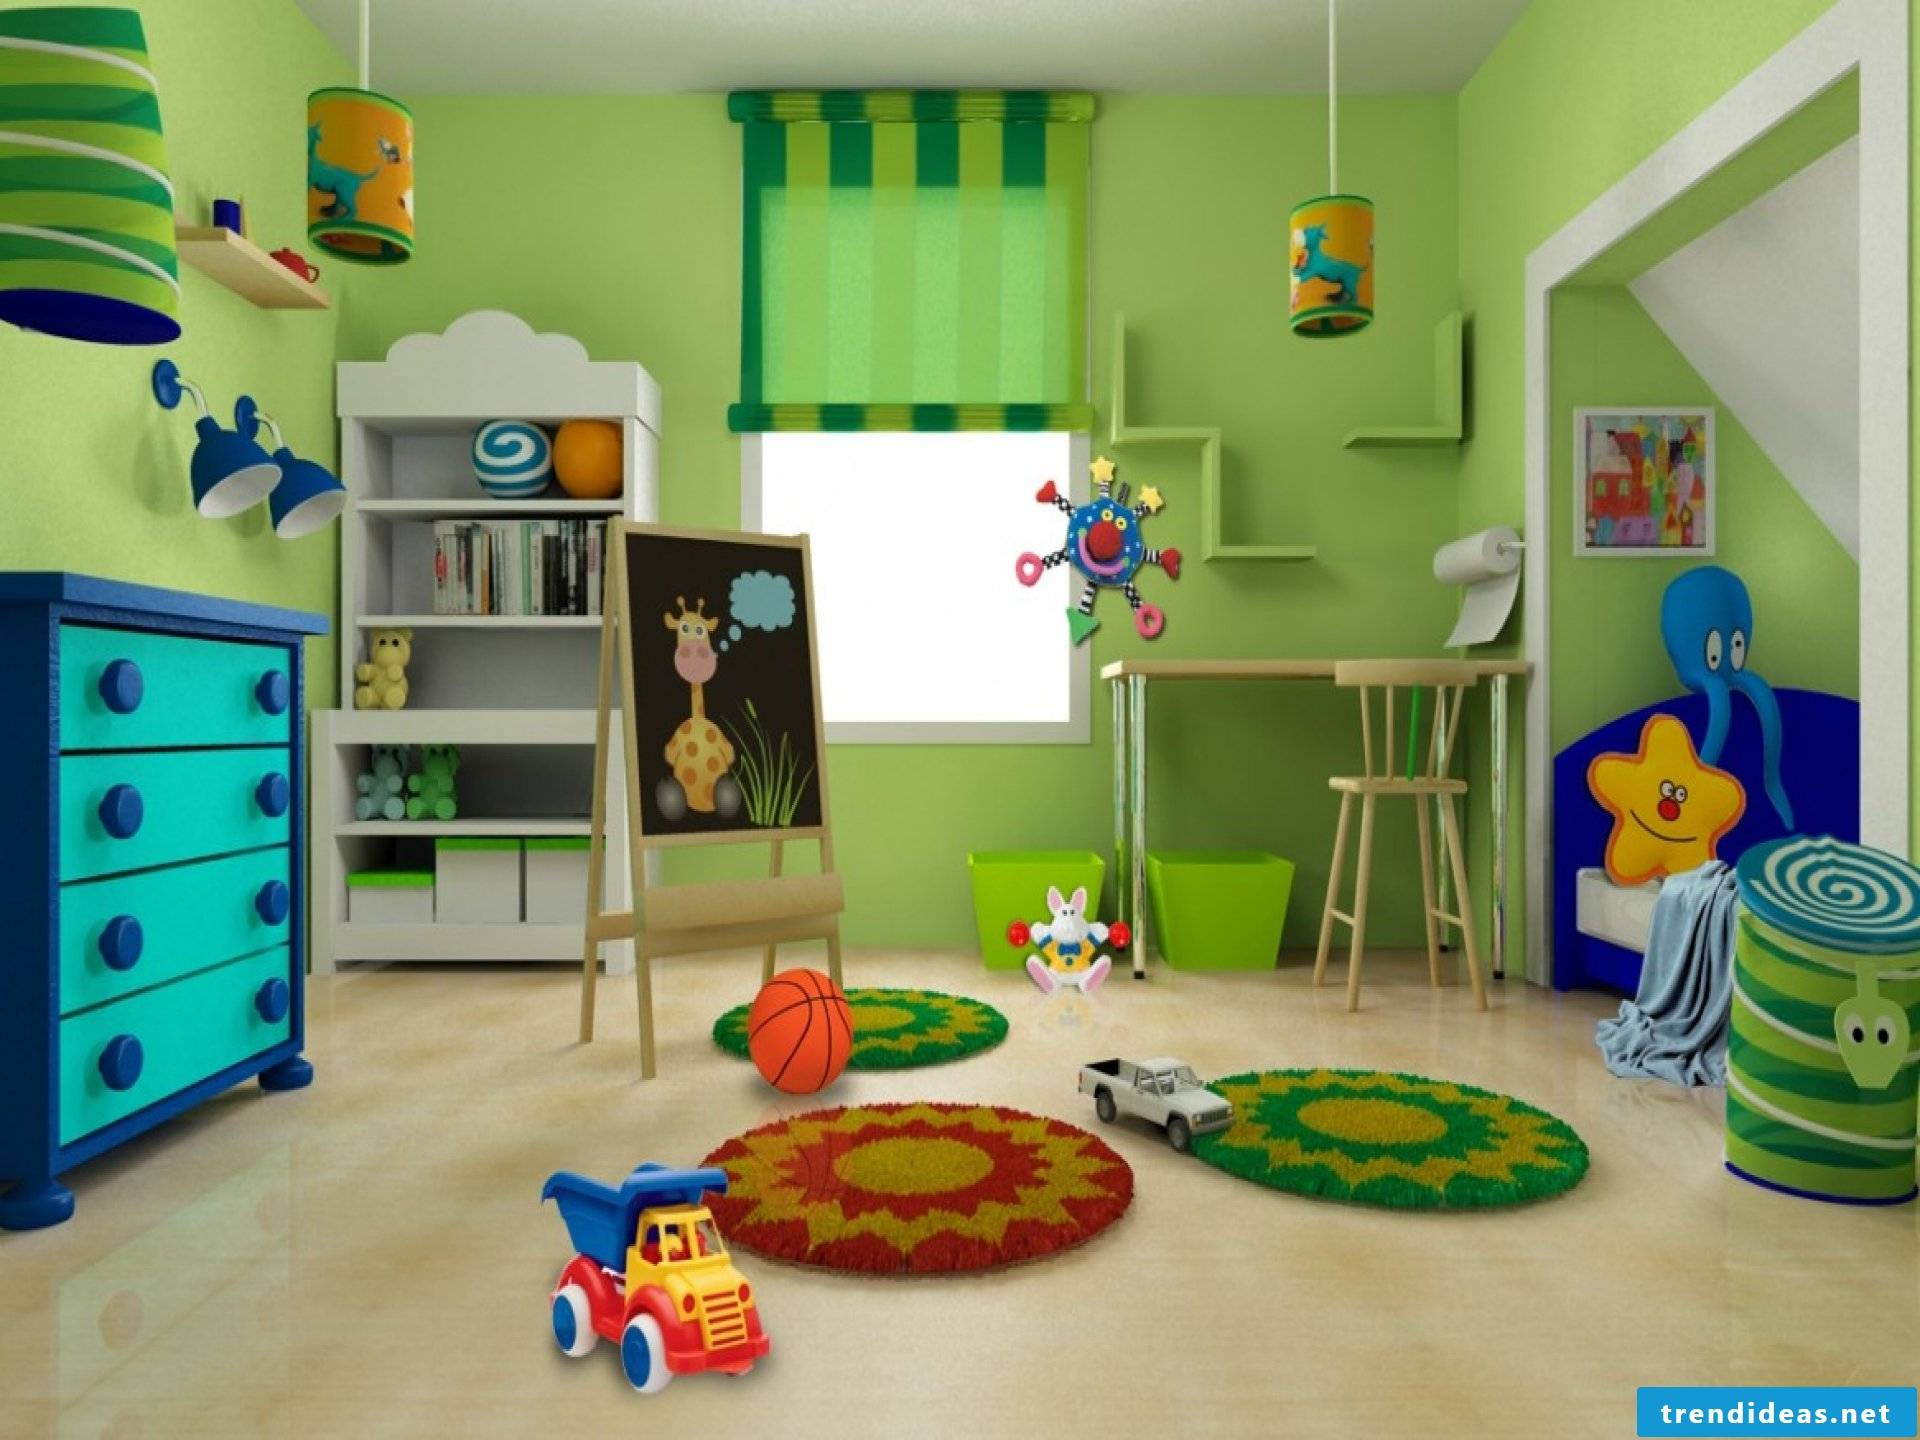 Nursery design- The green children's kingdom